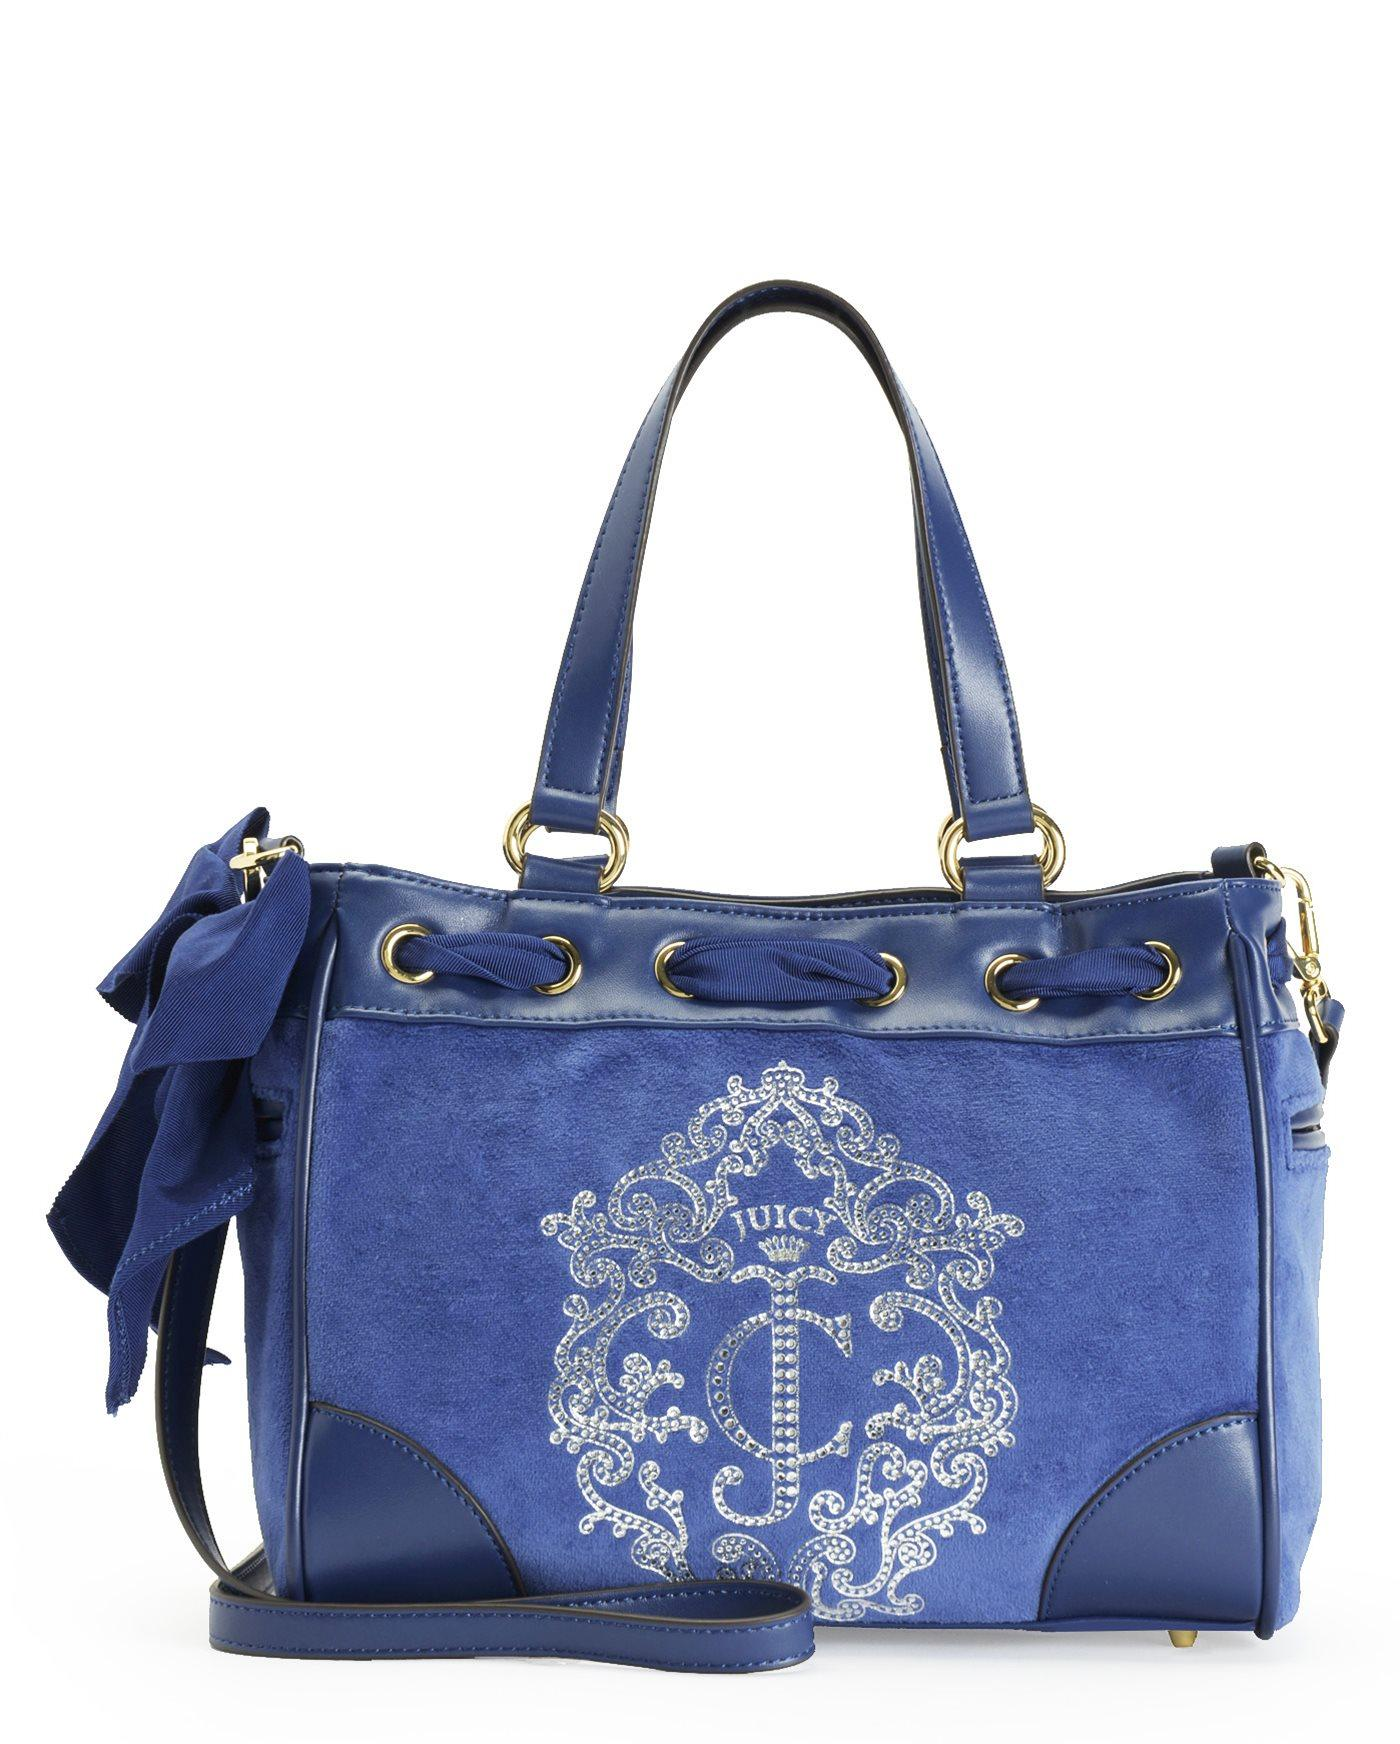 40% Off Full Priced Handbags @ Juicy Couture